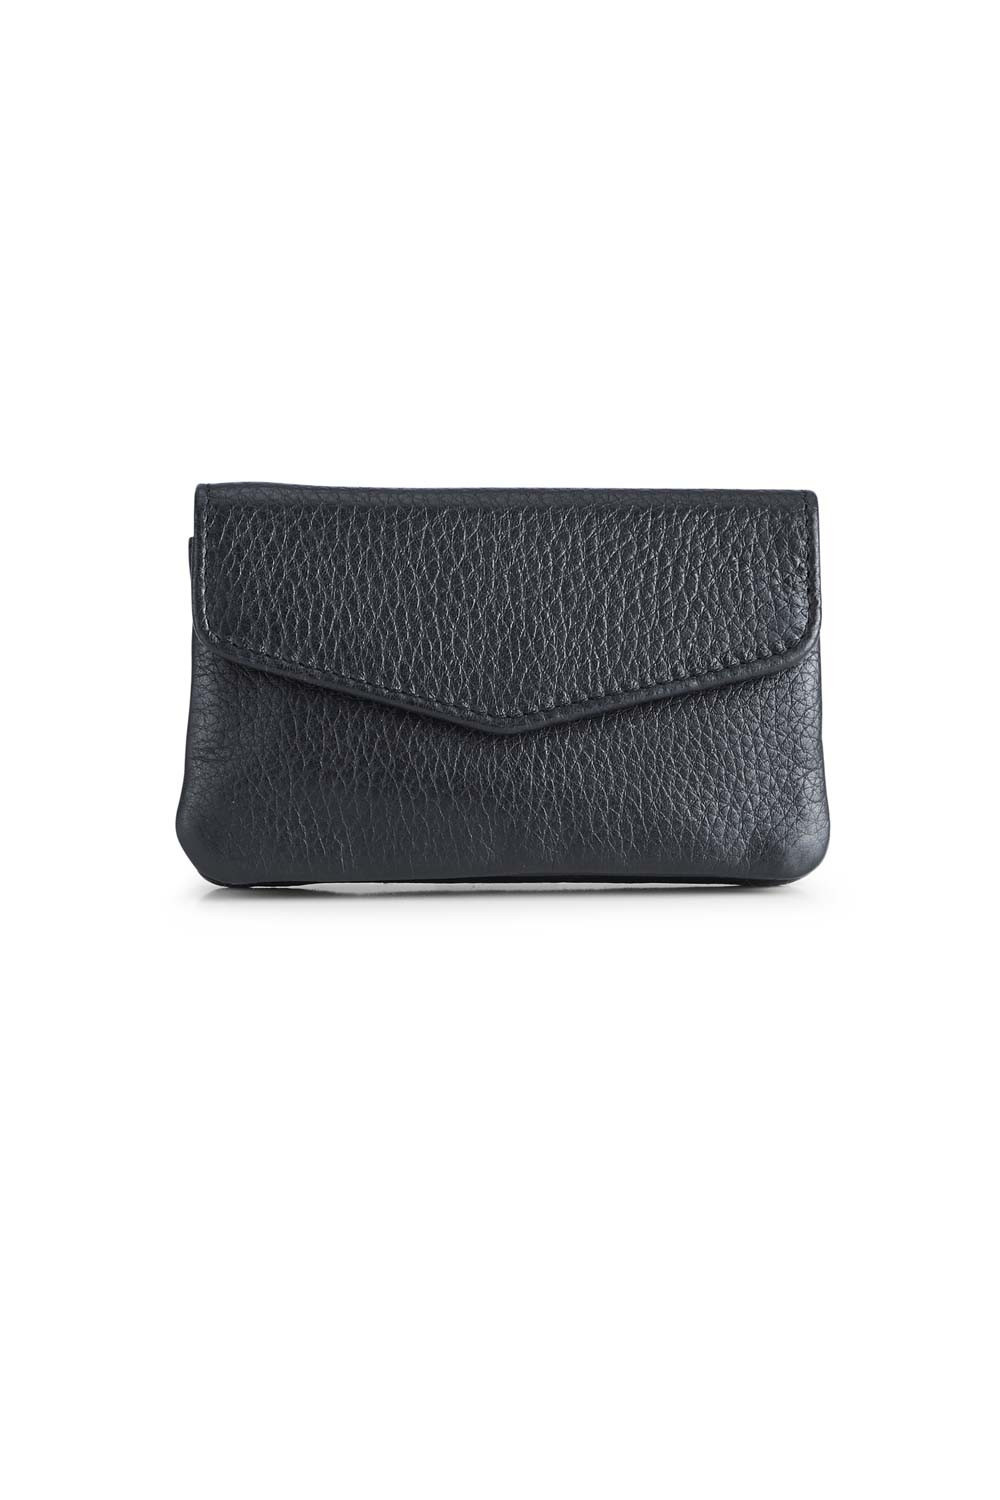 Faith Coin Purse Grain - Black-1